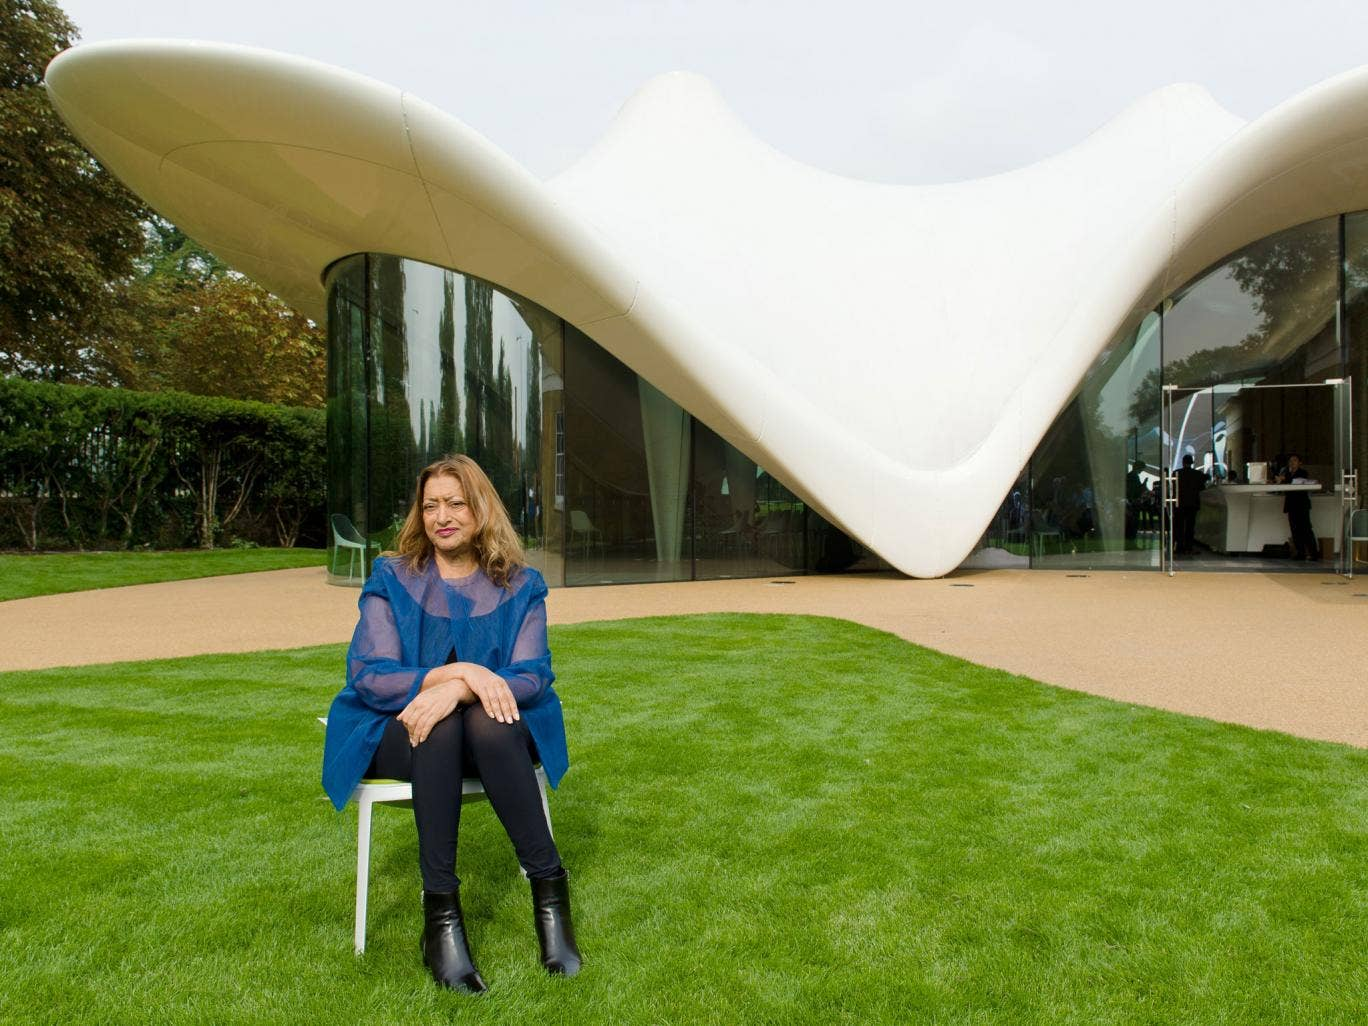 Iraqi-British architect Zaha Hadid is one of the few women who has made it to the top